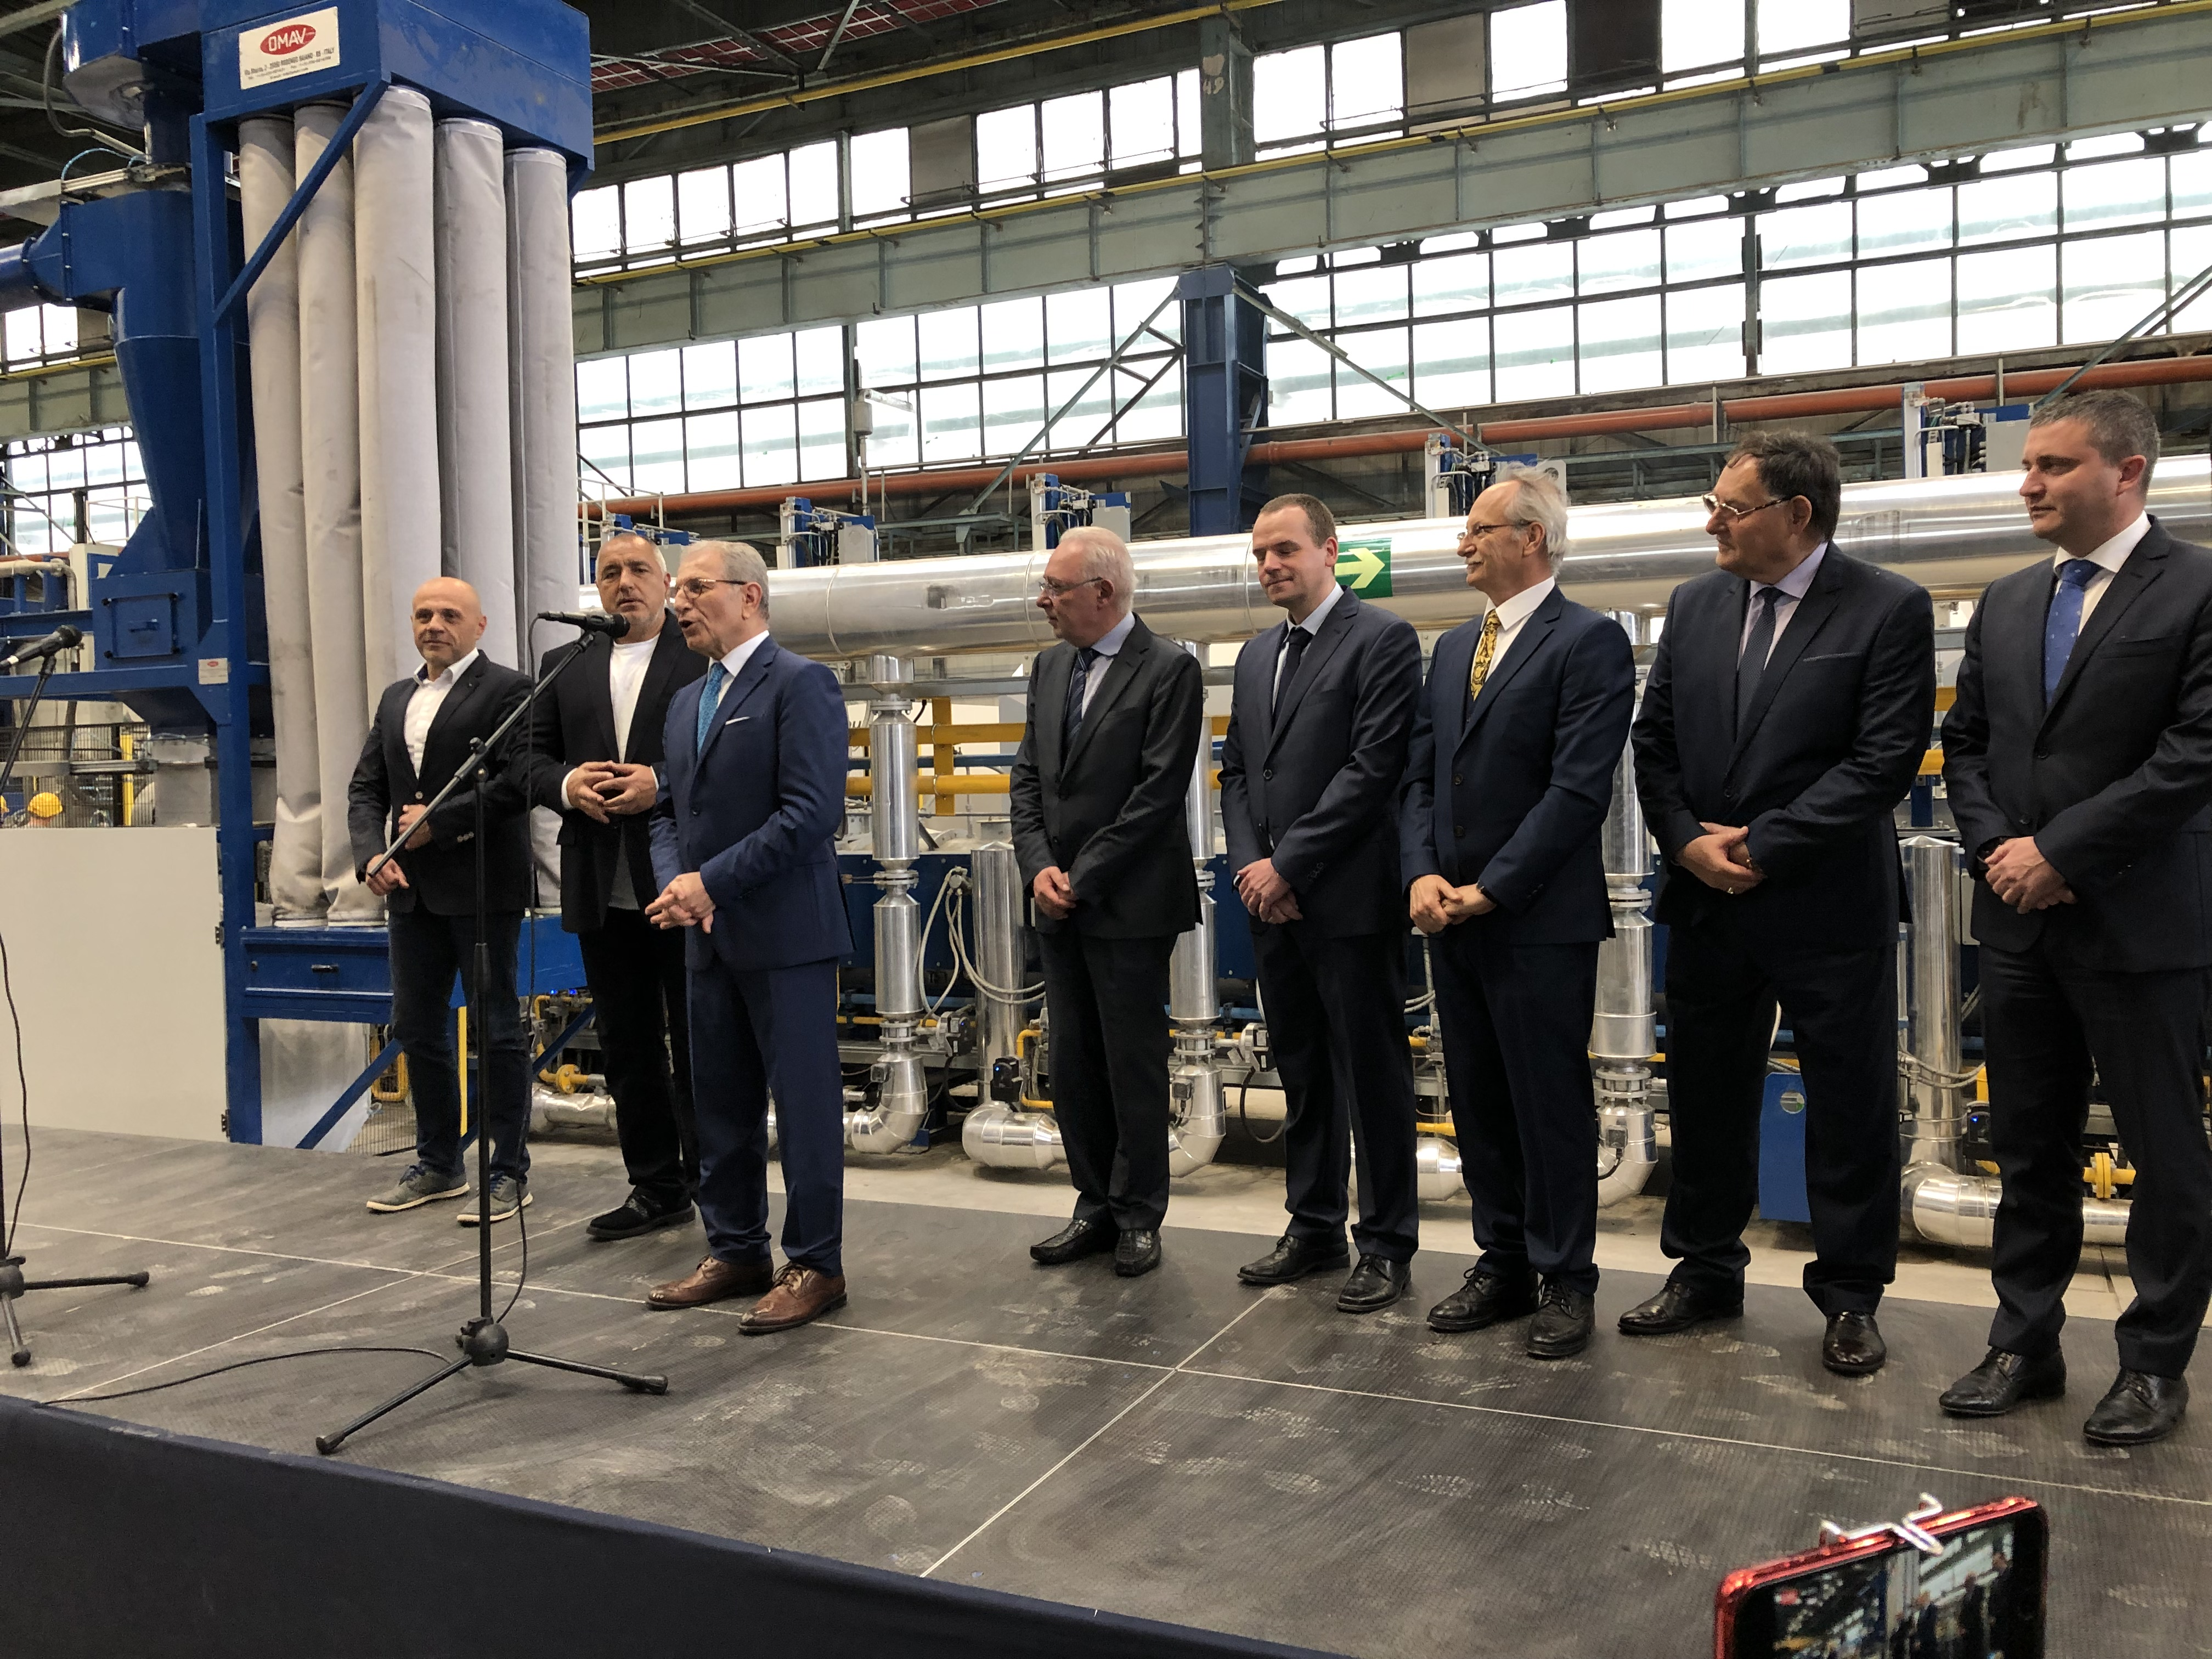 With an official ceremony at Alcomet's production base, a new high